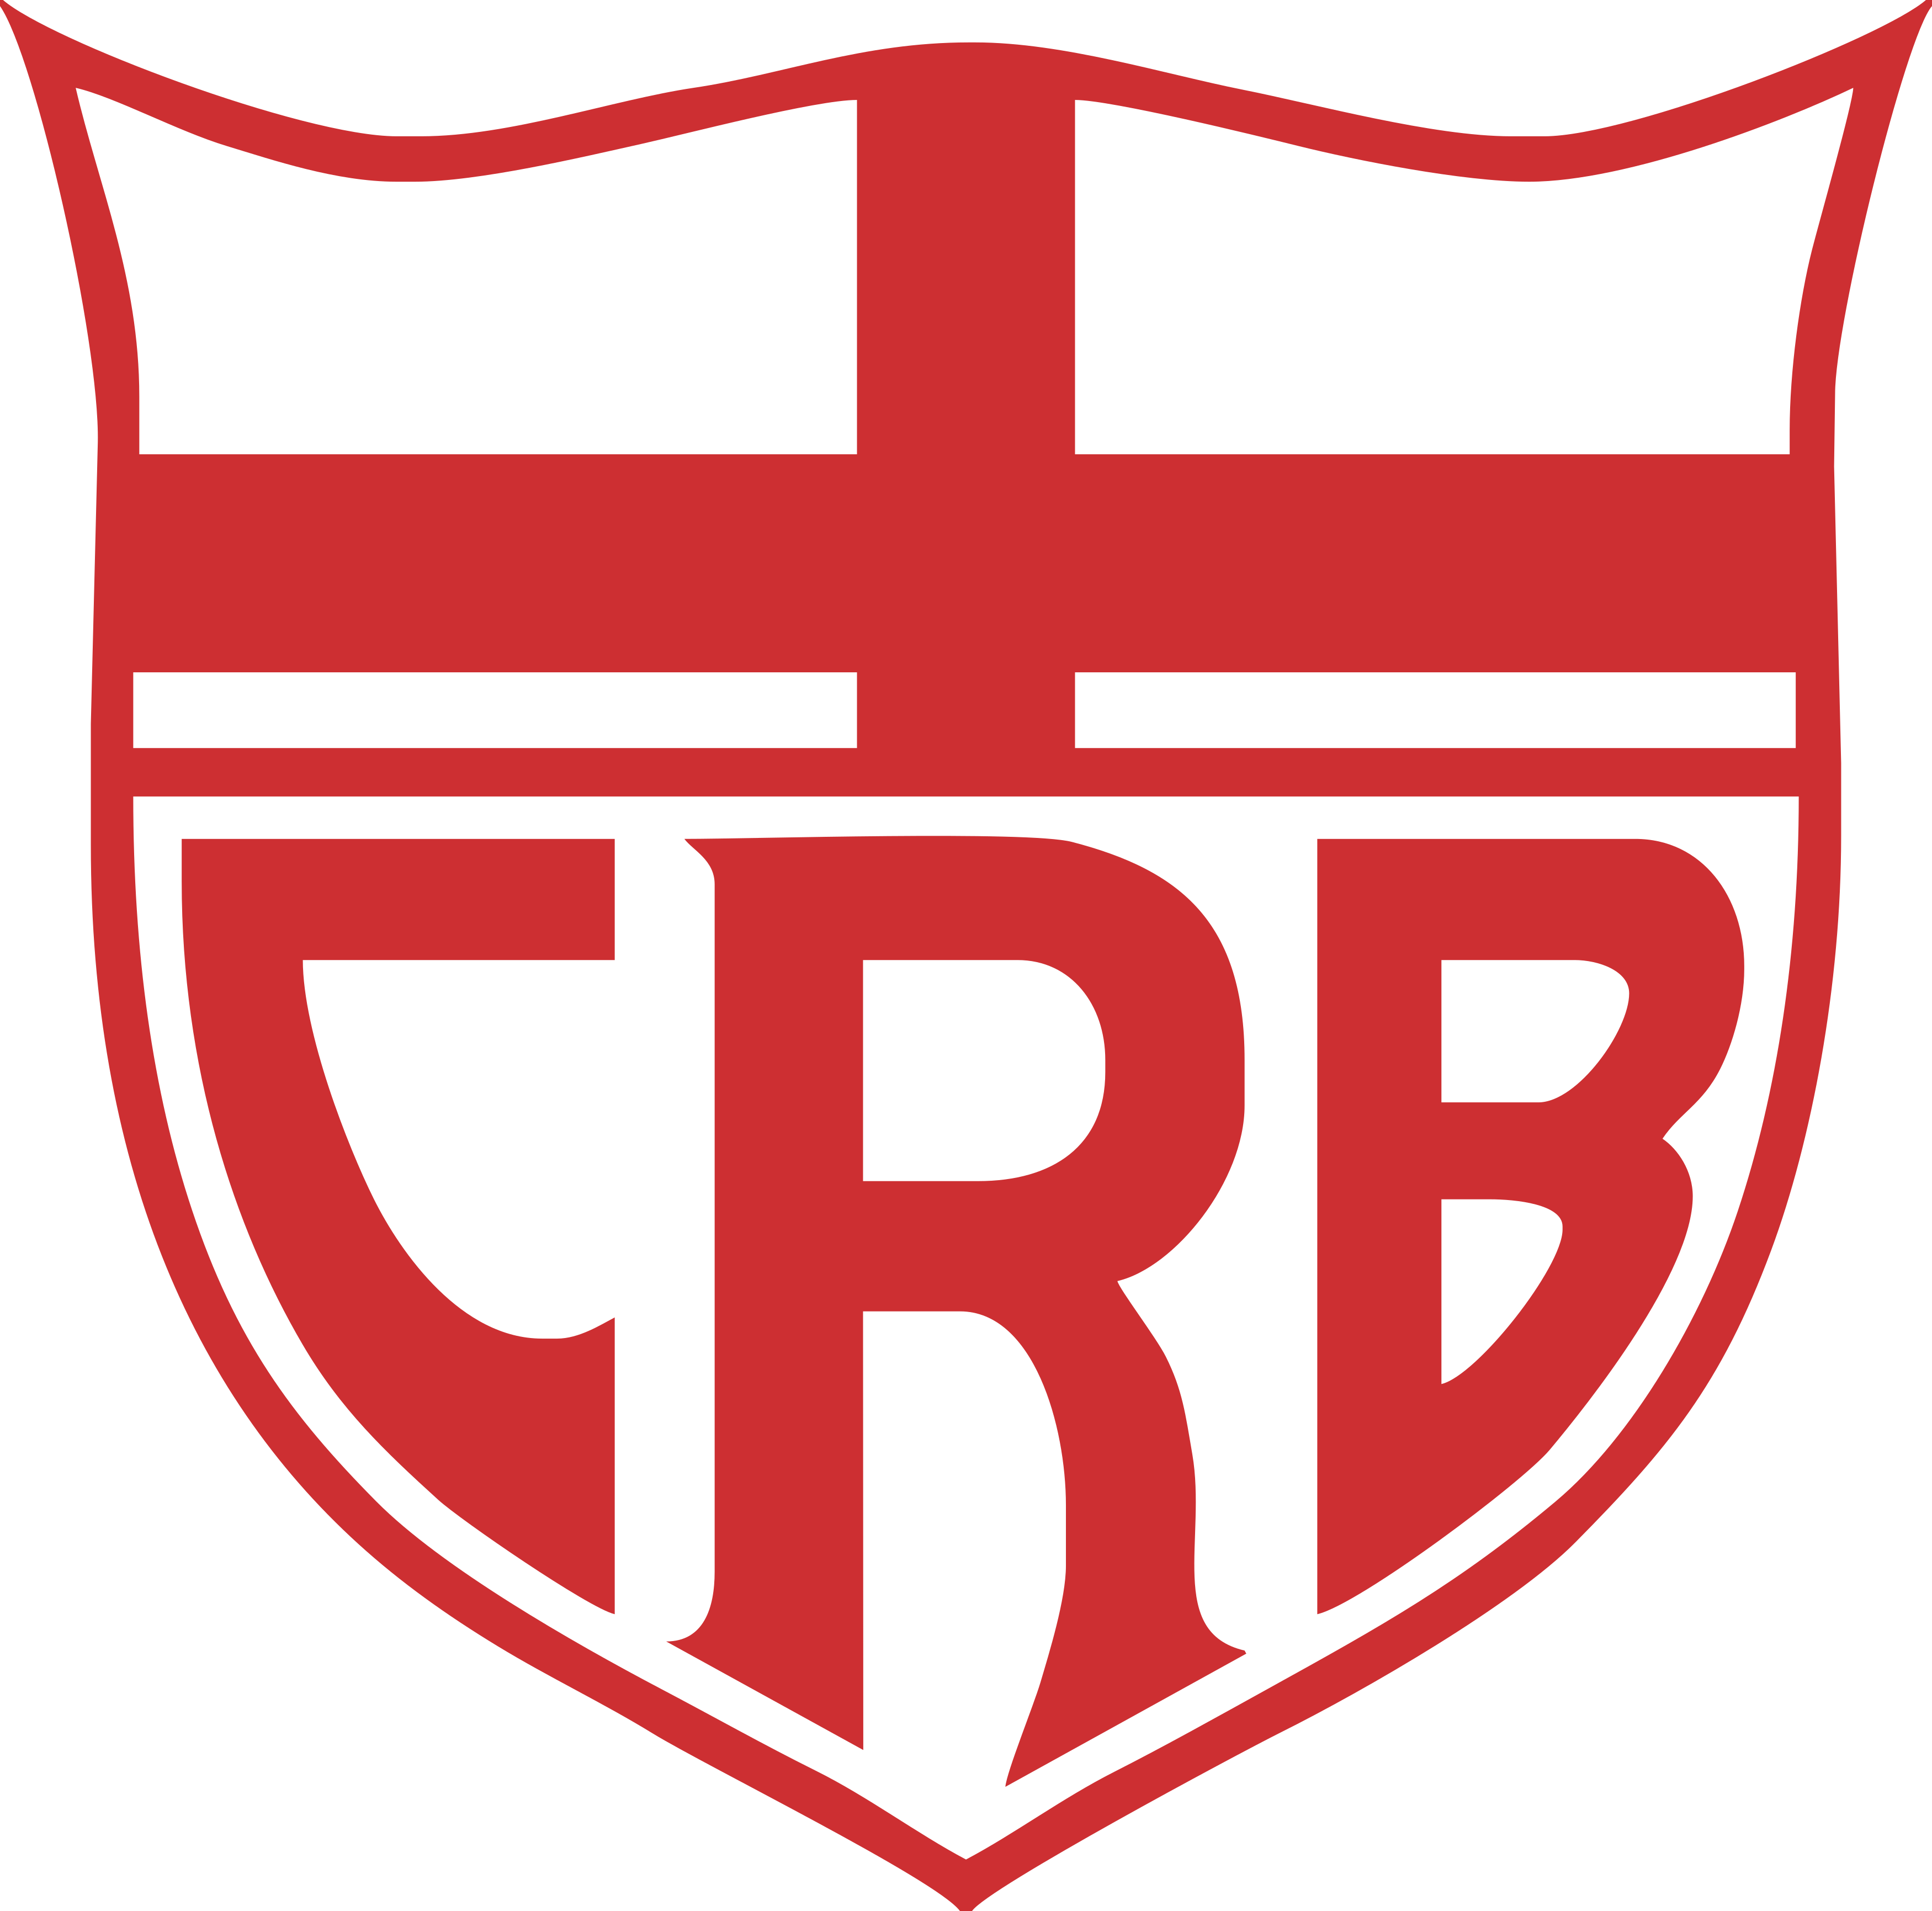 Time CRB